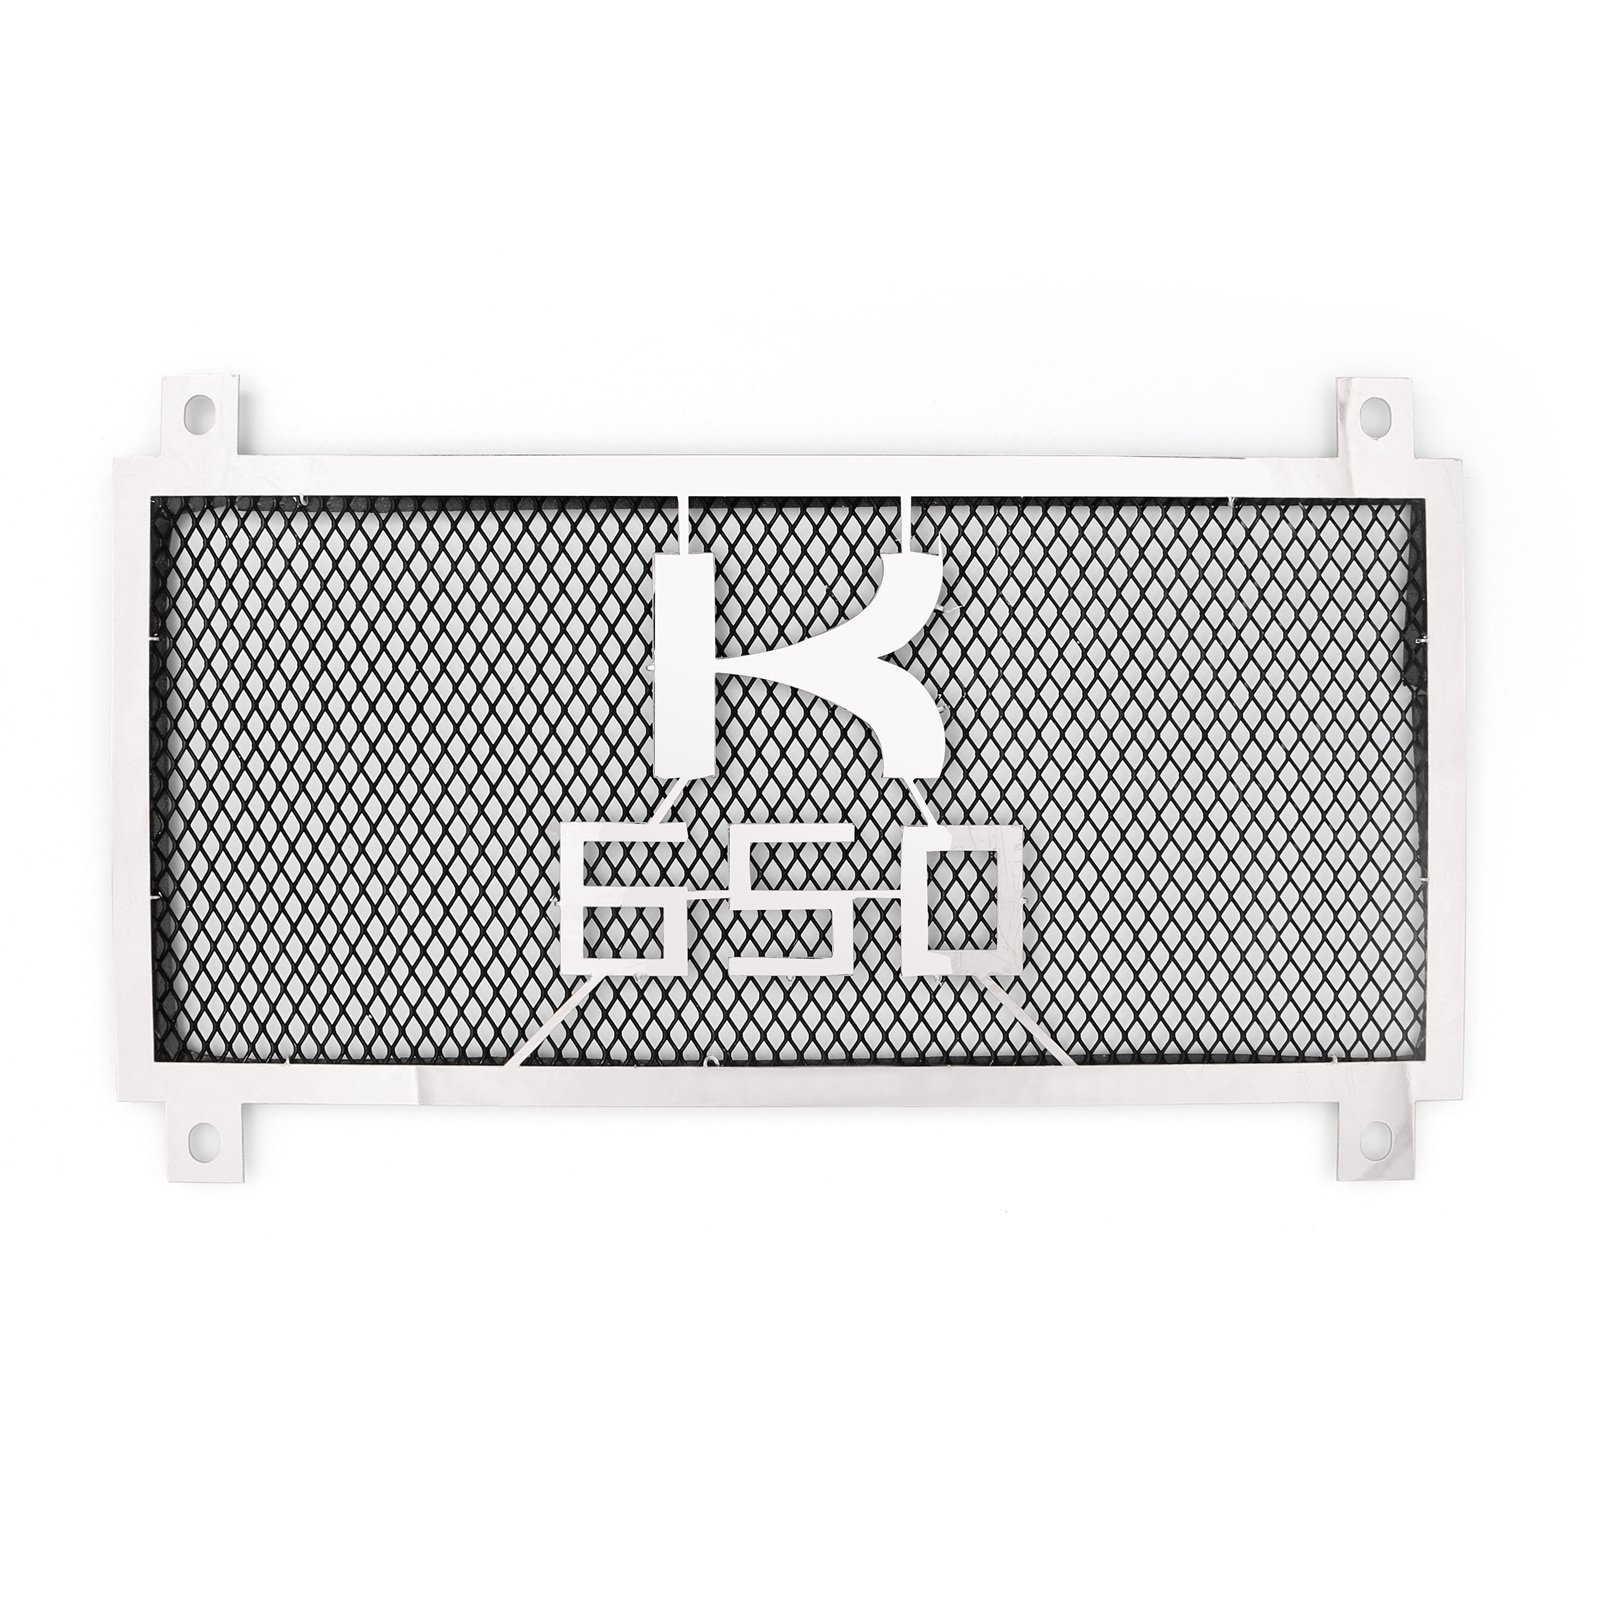 Areyourshop Radiator Grille Guard Cover Fuel Tank Protector For KAWASAKI Z650 2017 Black